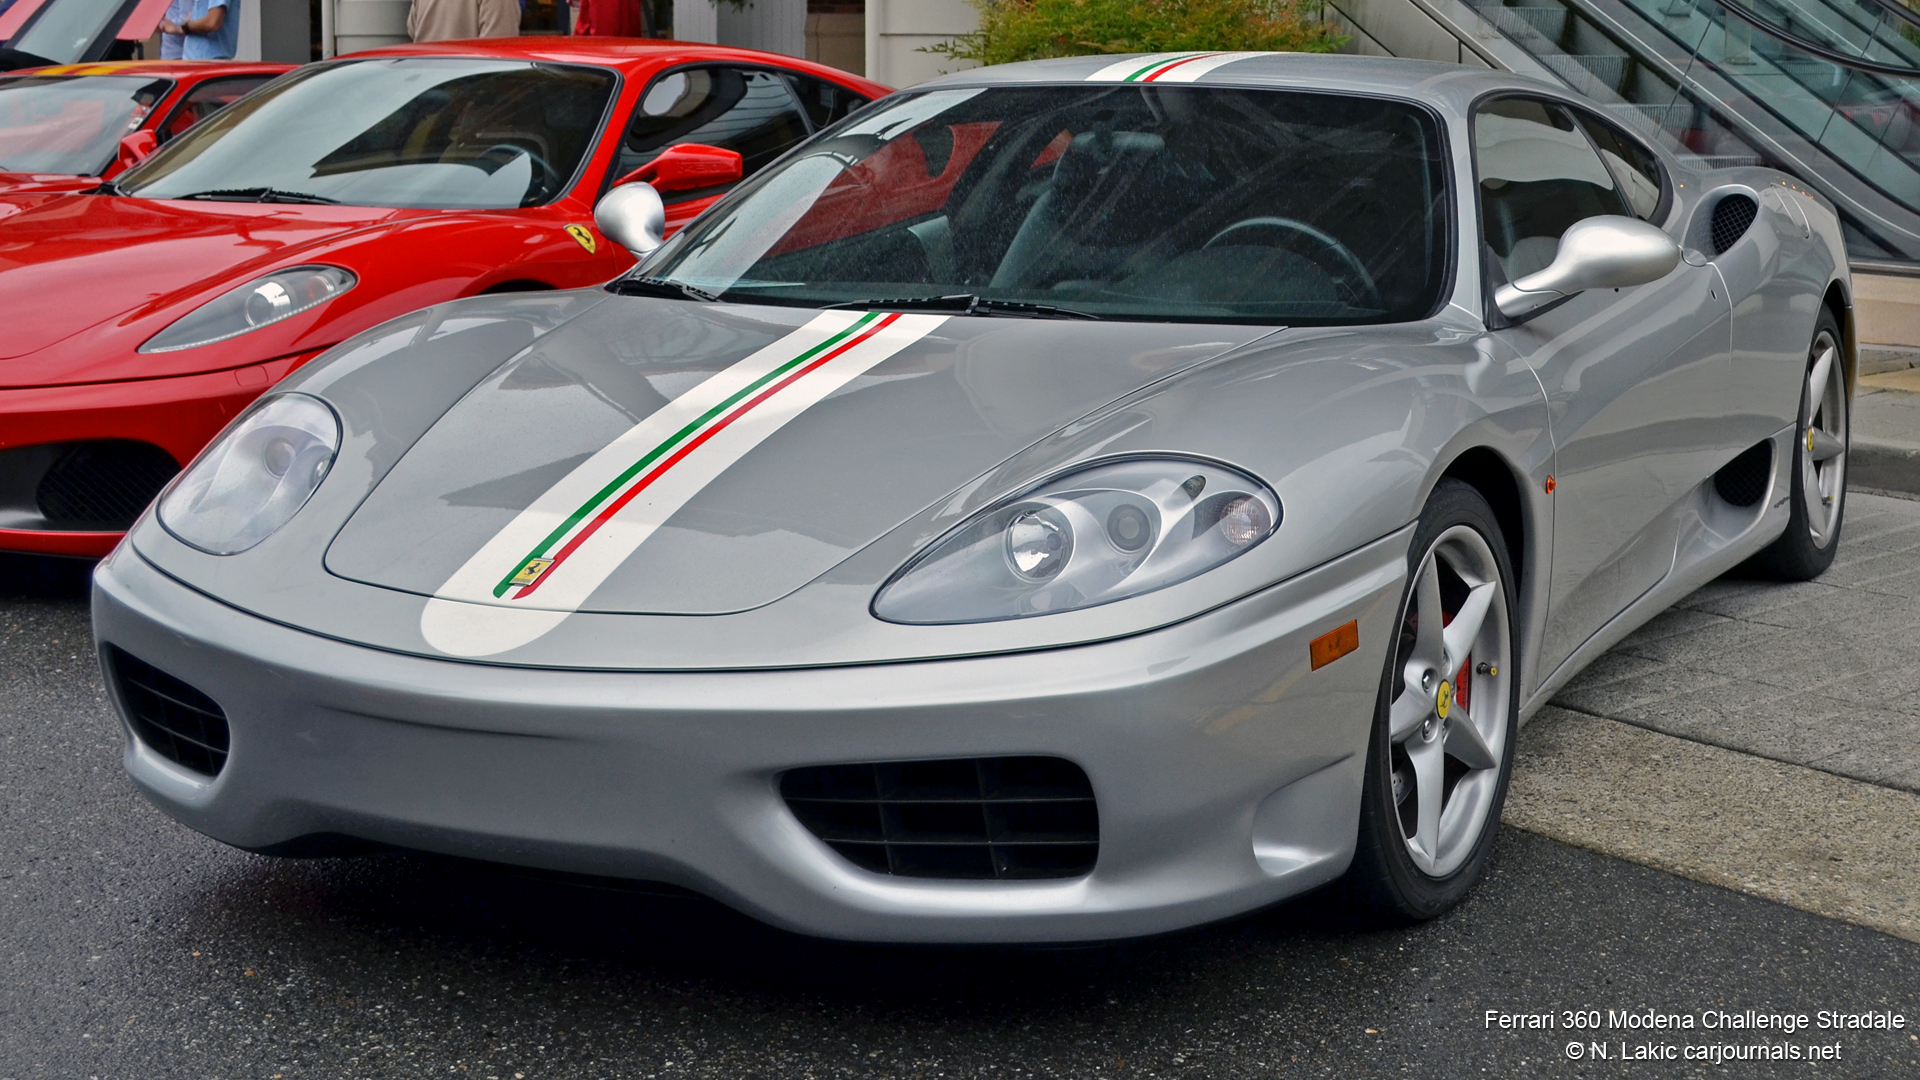 HD Car Wallpaper - Ferrari 360 Modena Challenge Stradale - Car Journals